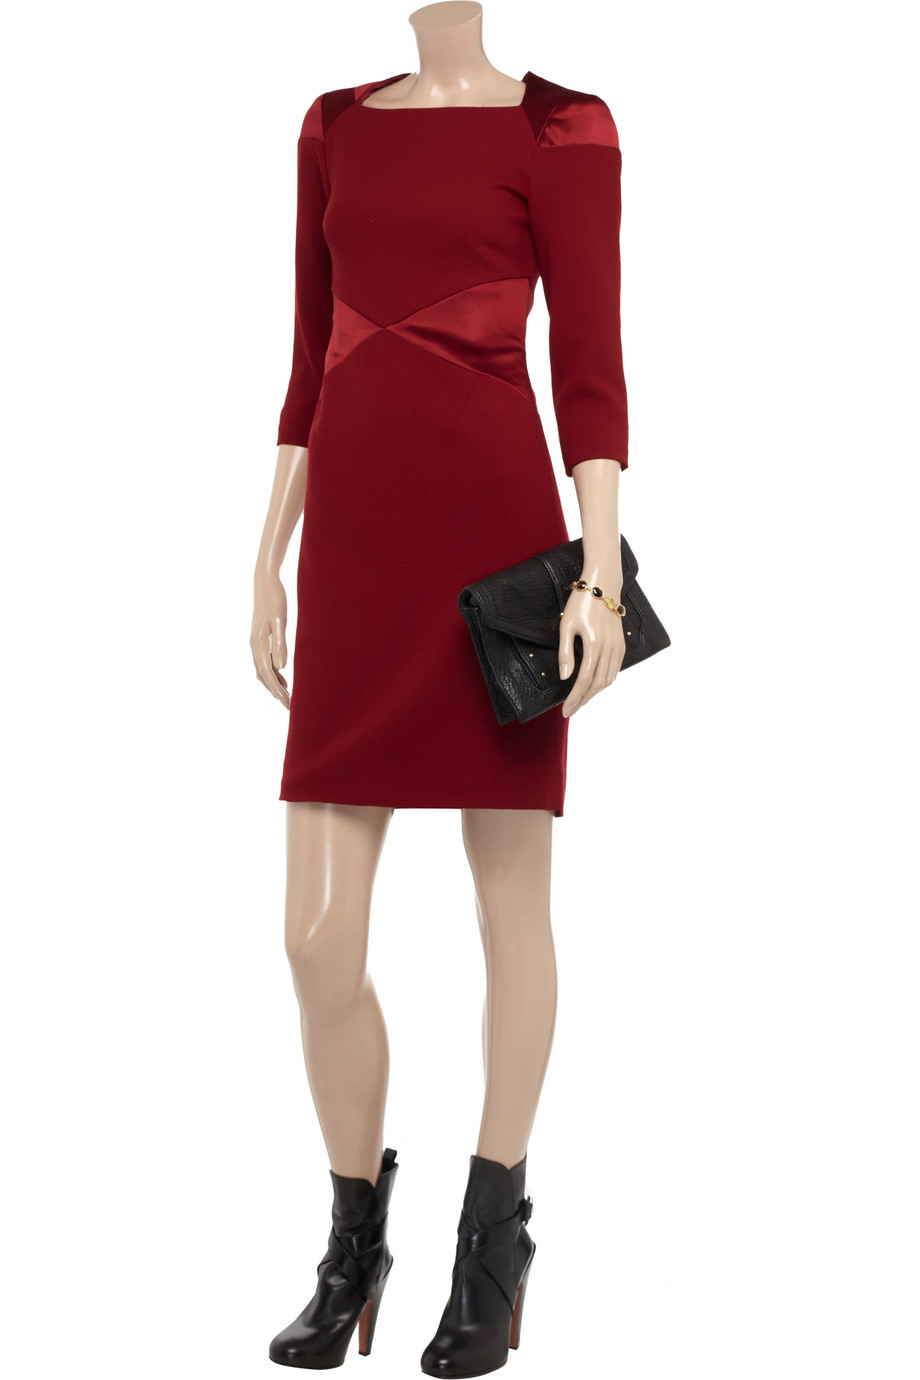 Project d red dress in pretty